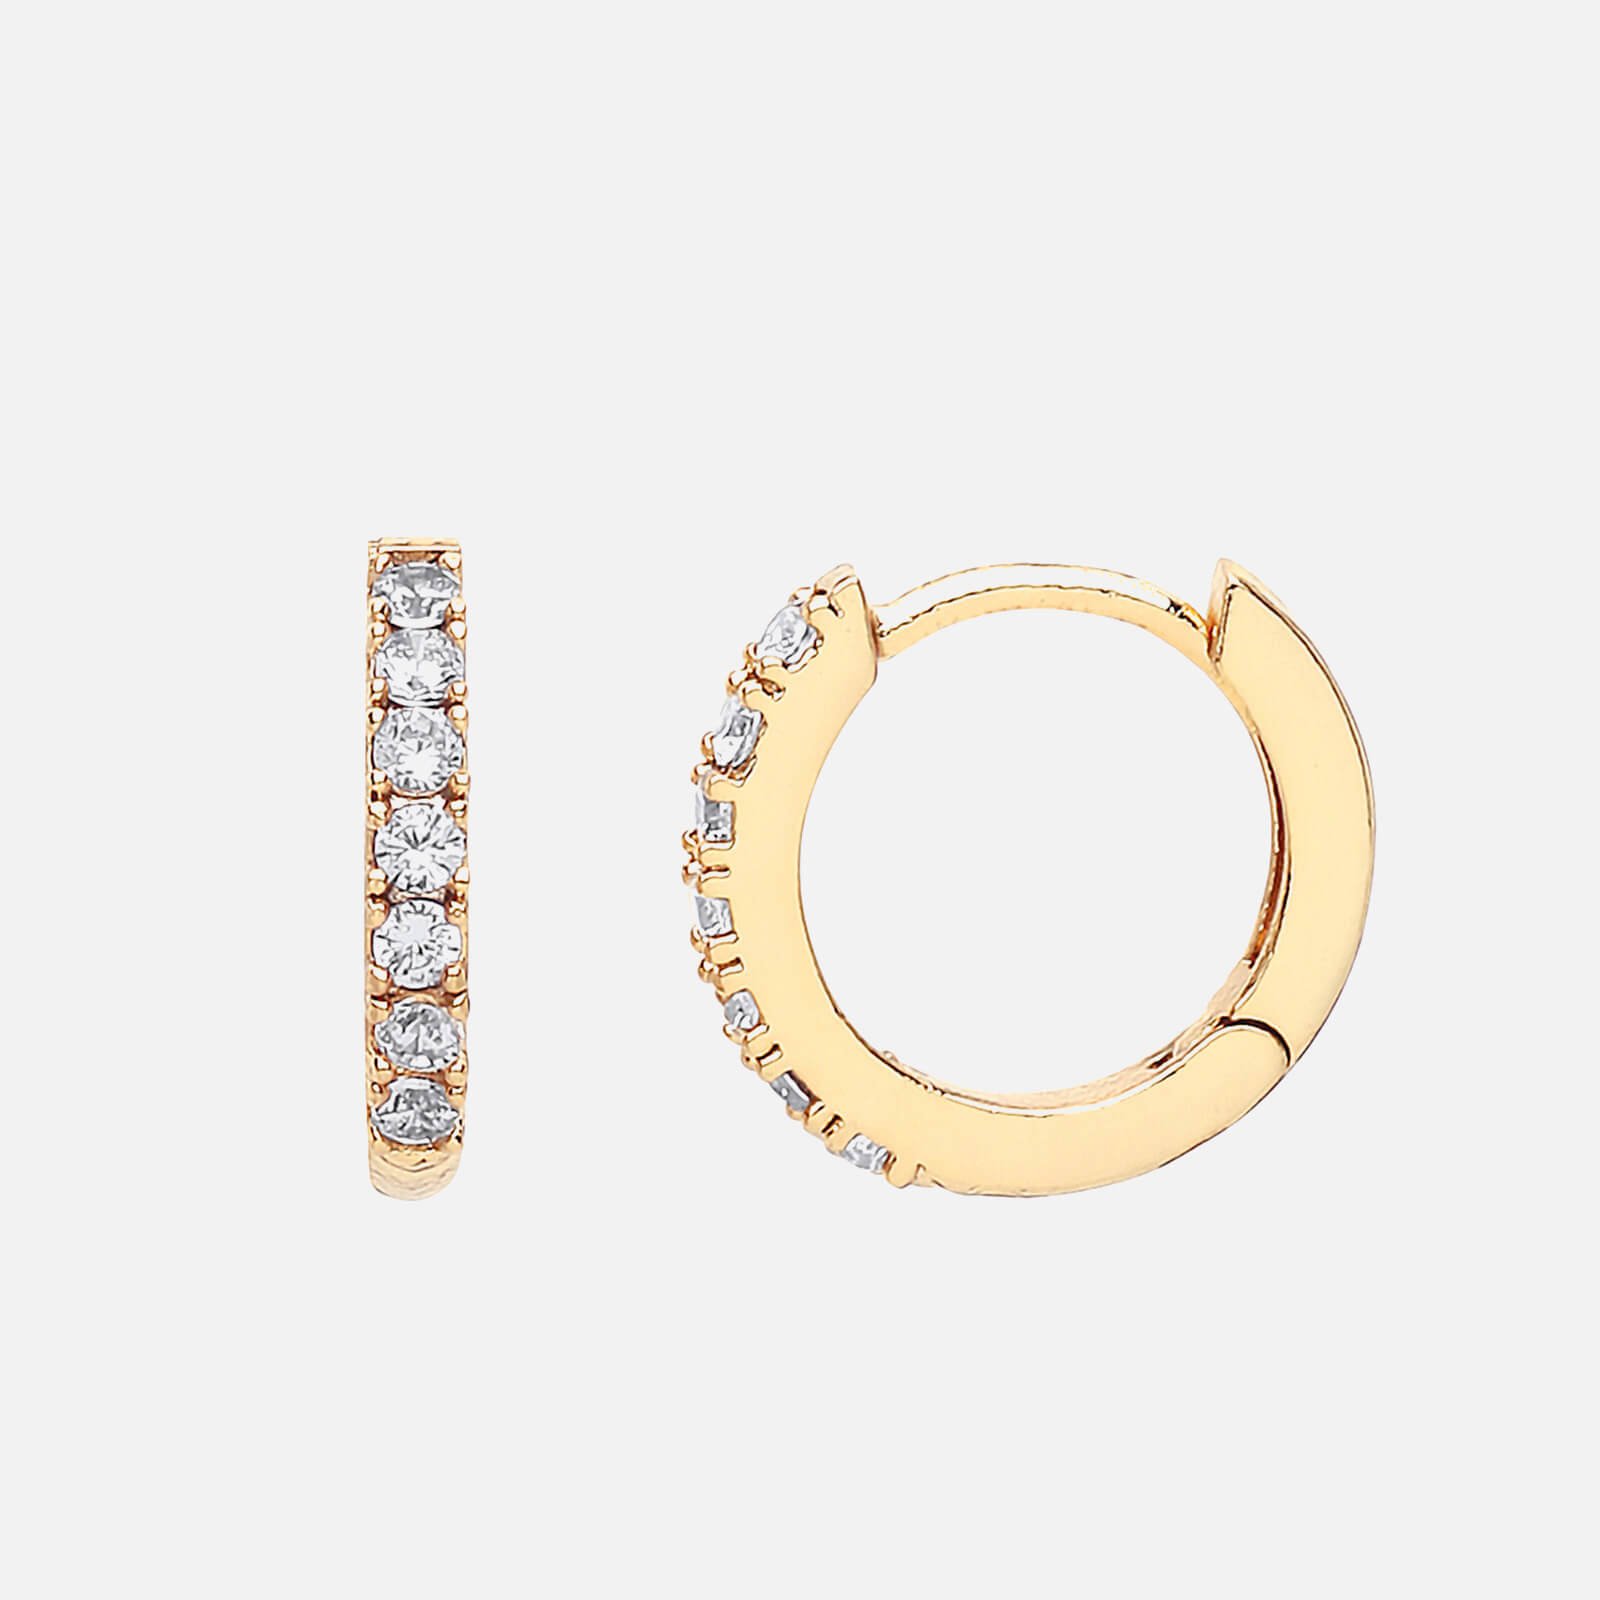 Estella Bartlett Women's Pave Set Hoop Earrings with White CZ- Gold Plated/NP